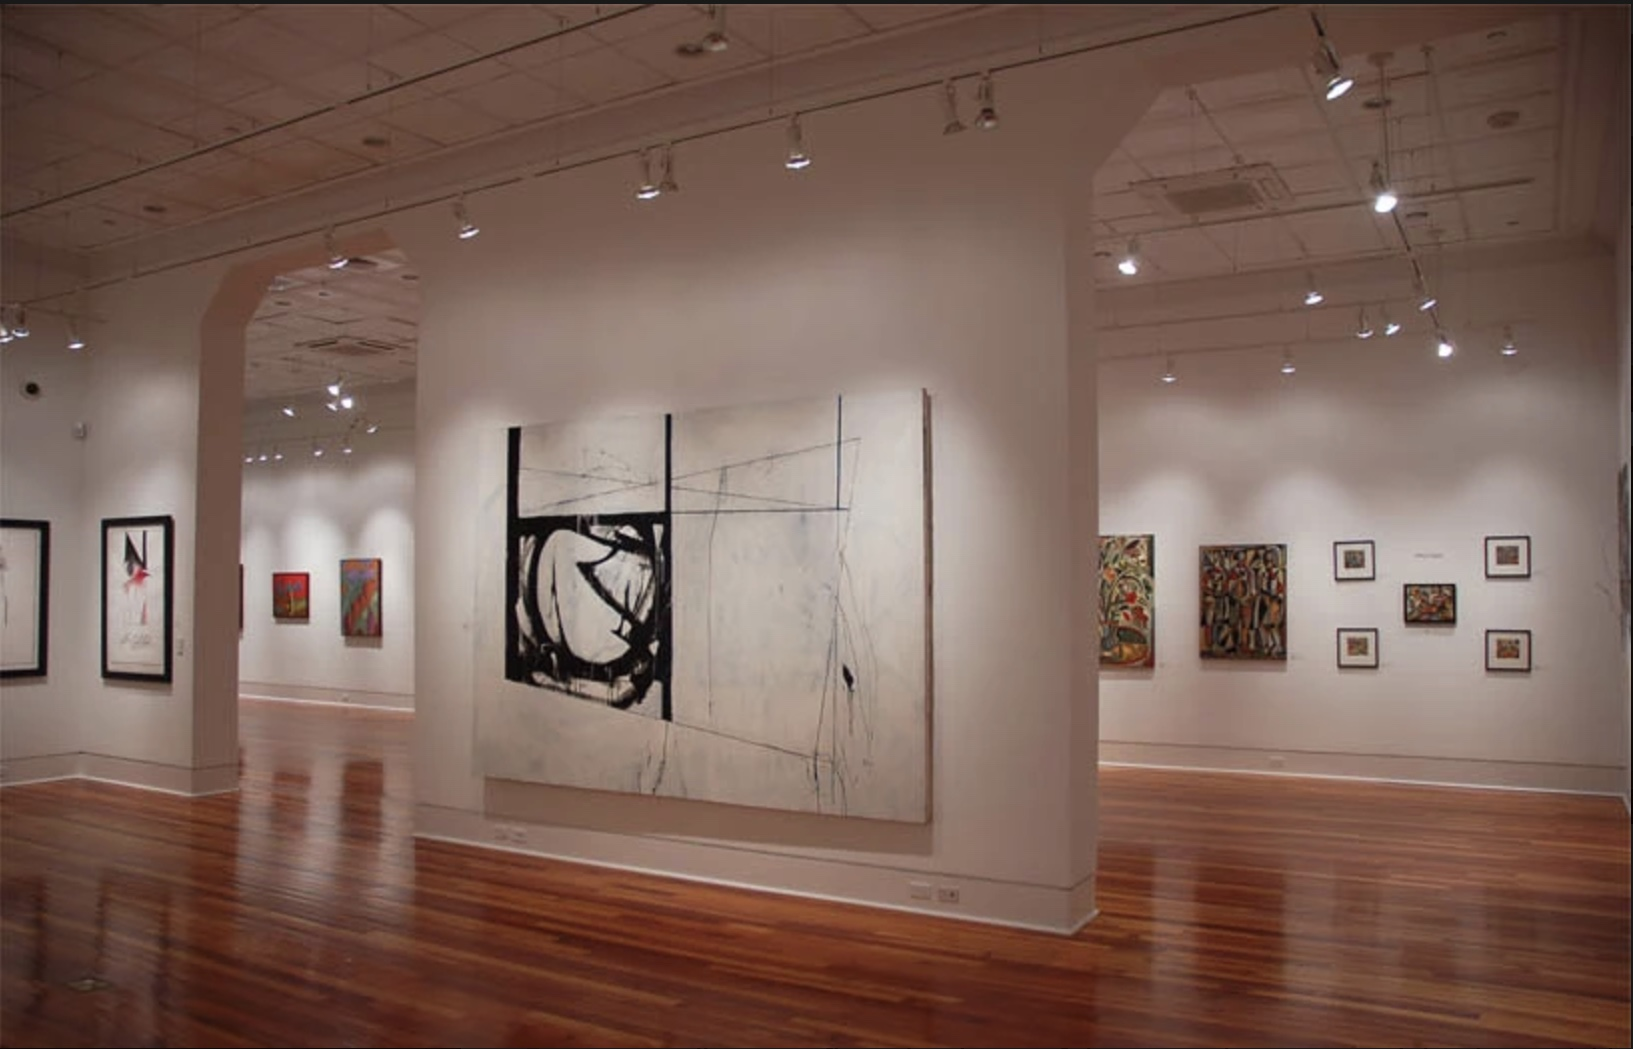 Gallery expanse